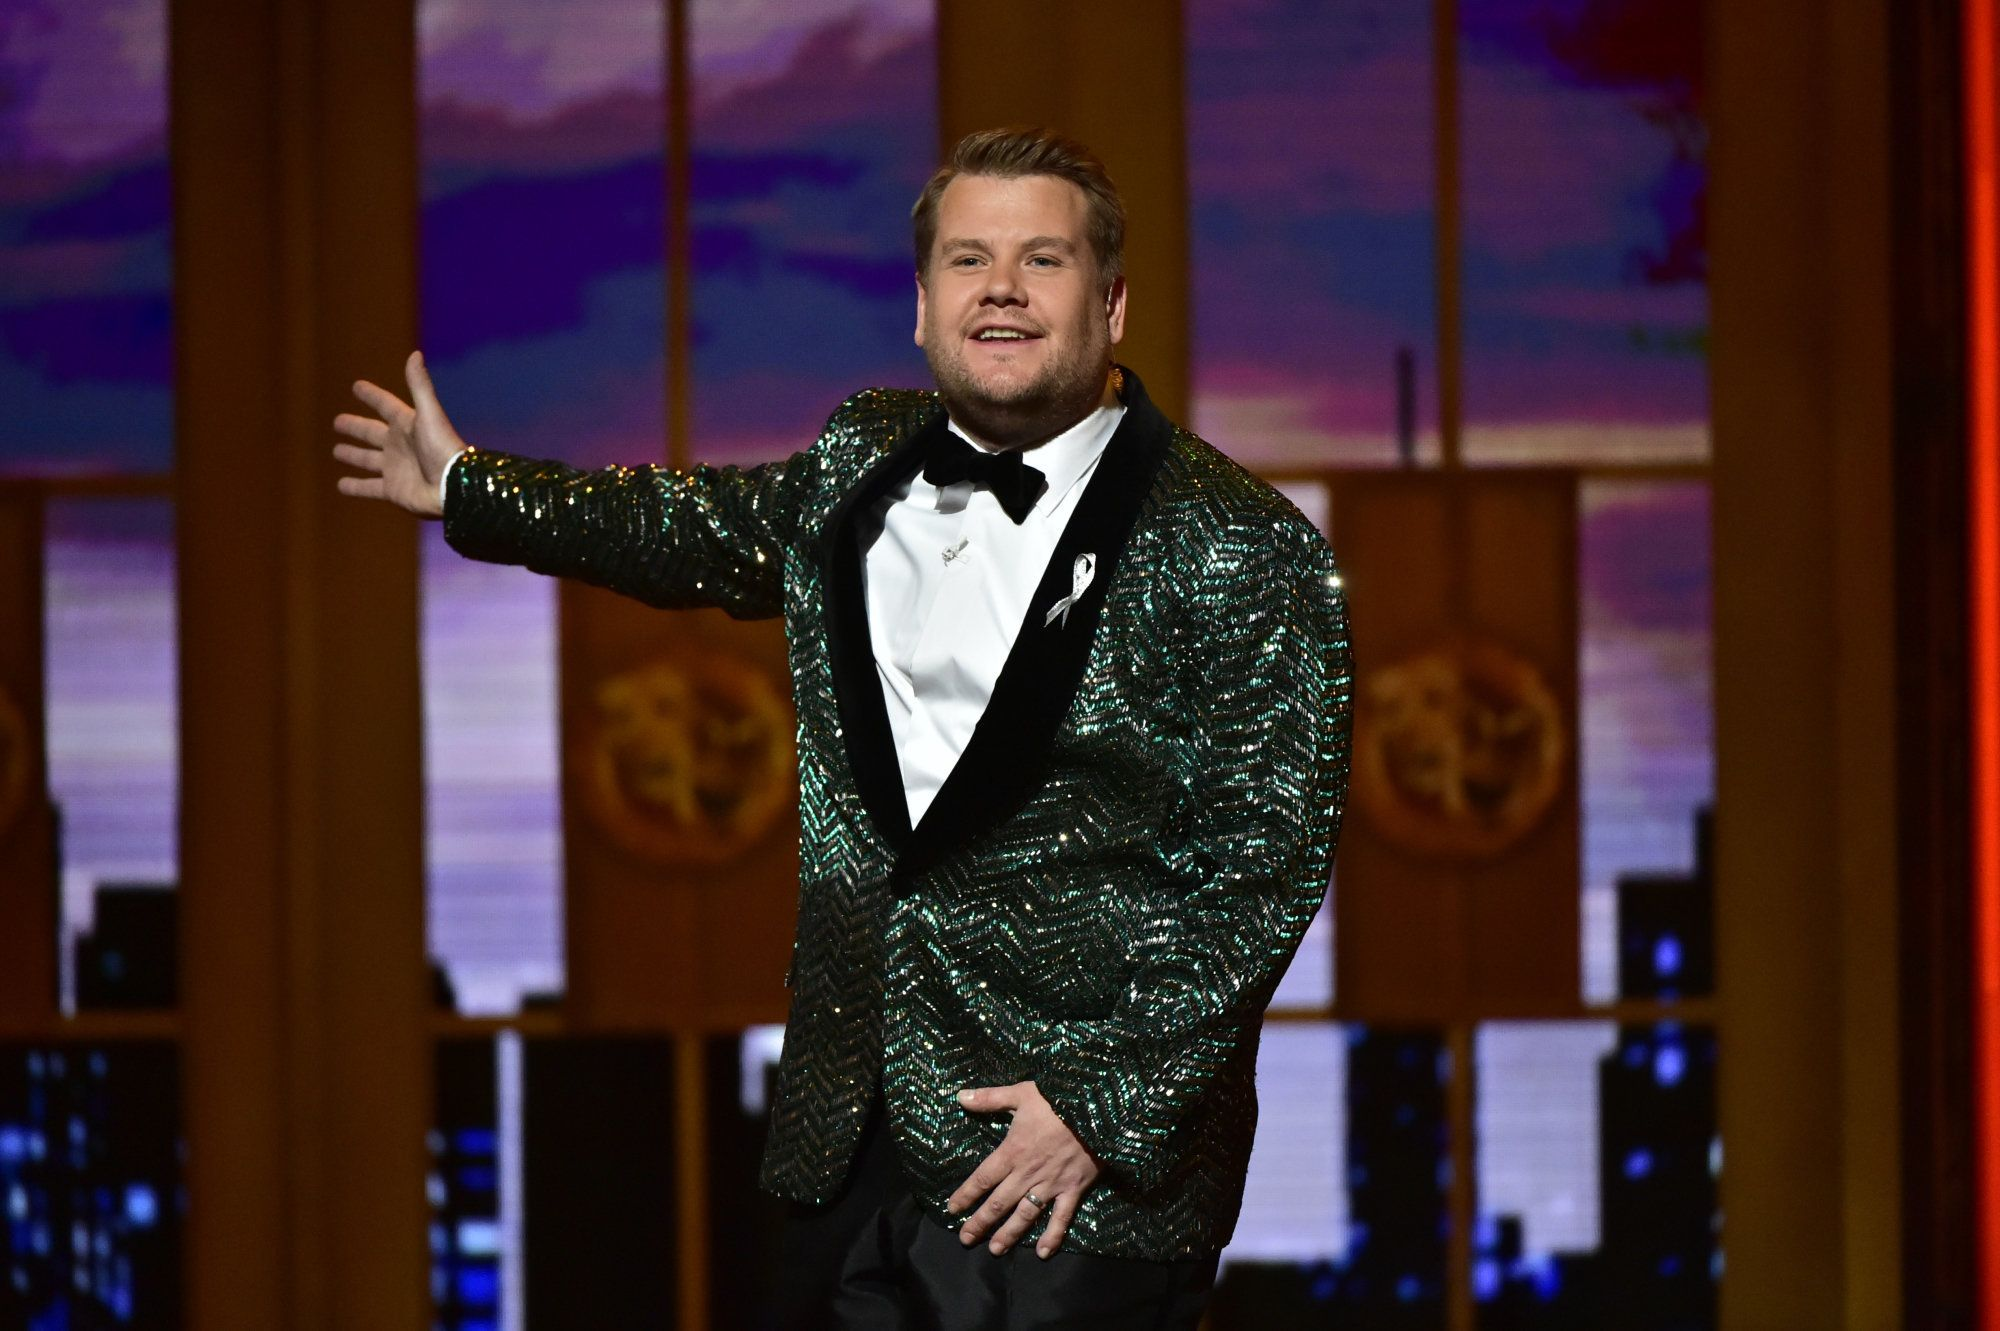 James Corden at The 70th Annual Tony Awards, live from the Beacon Theatre in New York City, Sunday, June 12, 2016.